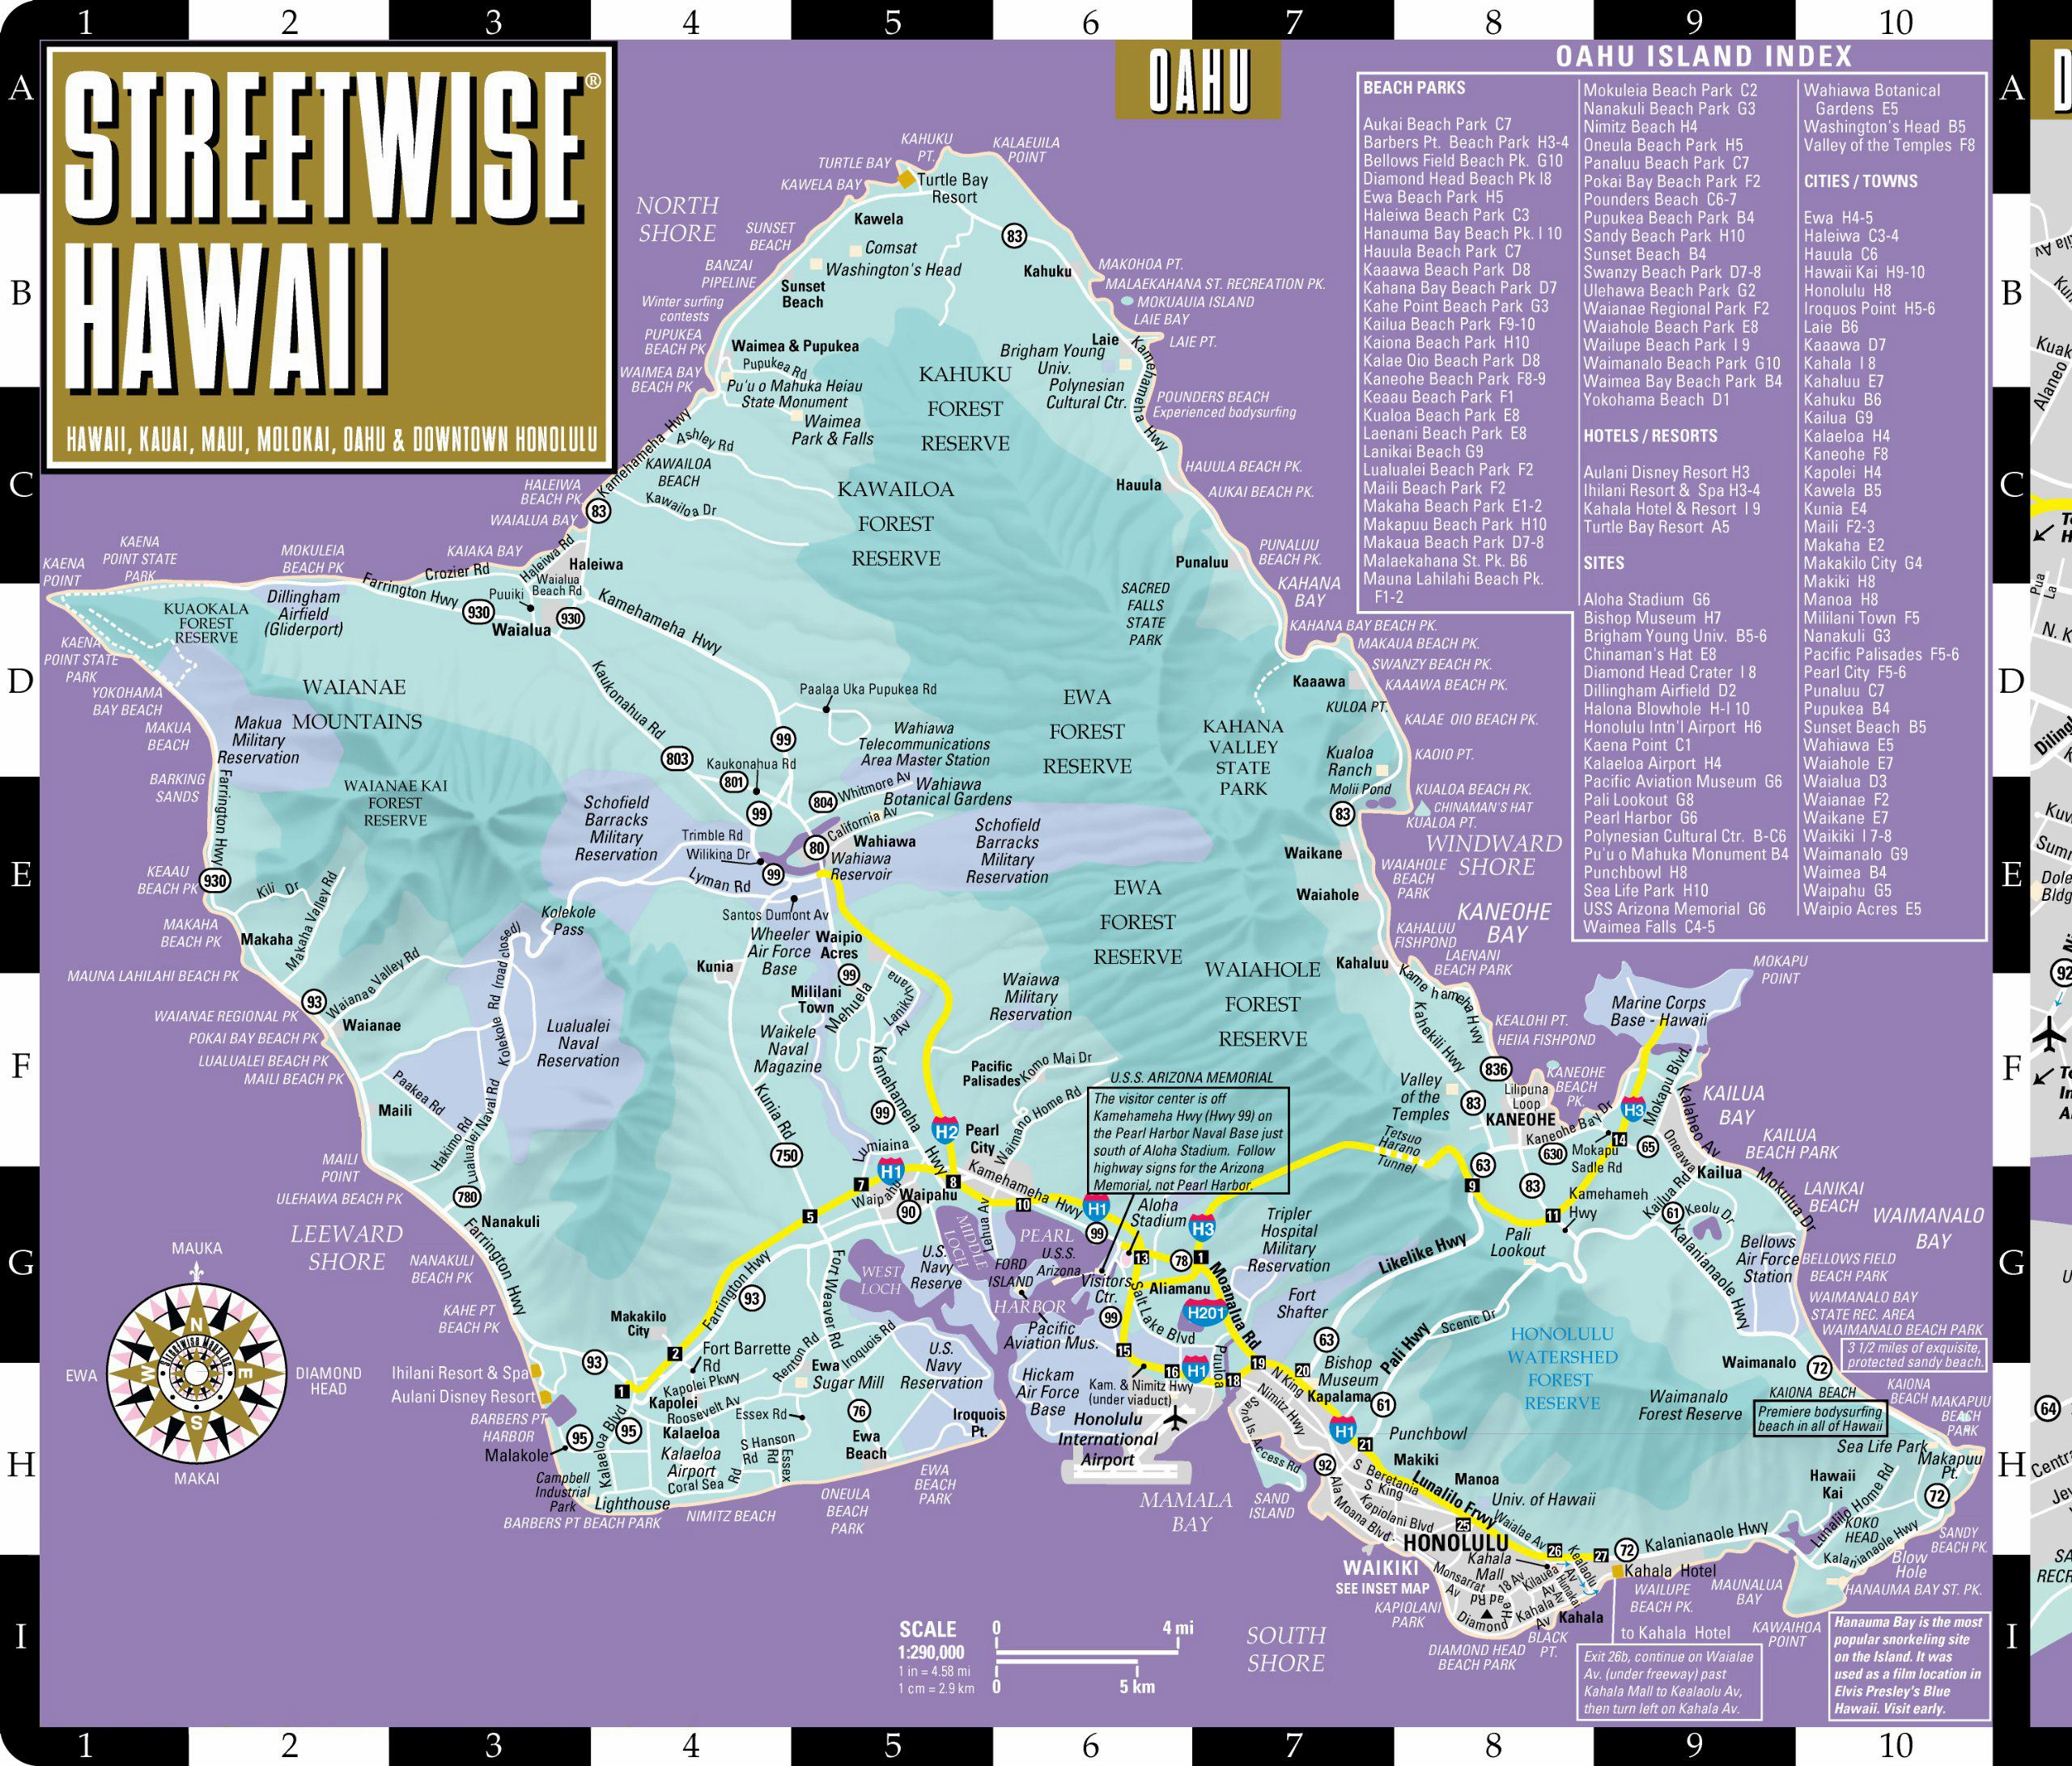 Large Oahu Island Maps For Free Download And Print | High-Resolution - Printable Map Of Kauai